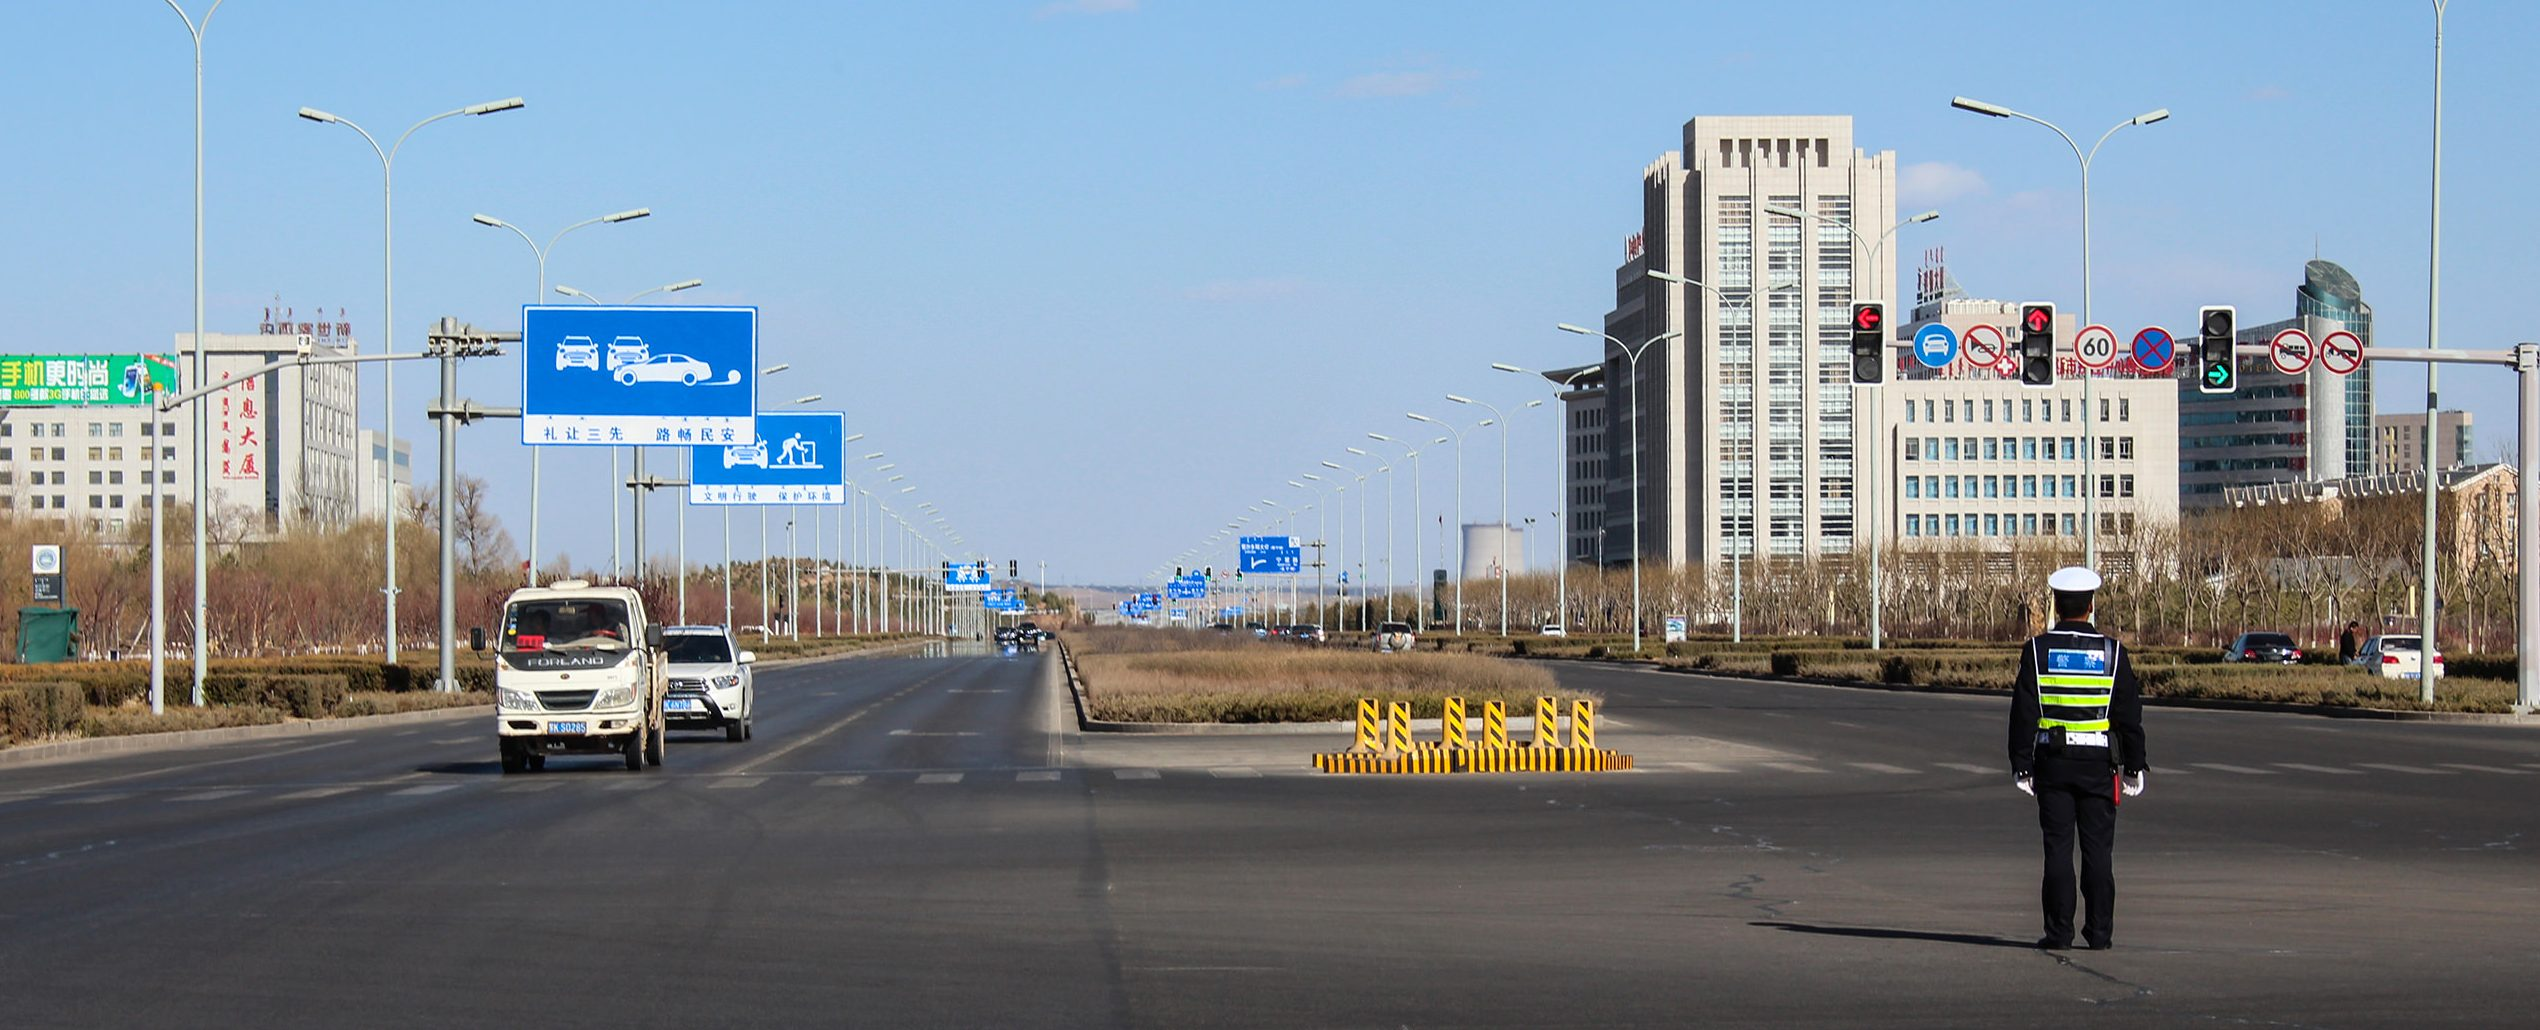 Ordos, China, a Ghost-City: photo by Darmon Richter 2014